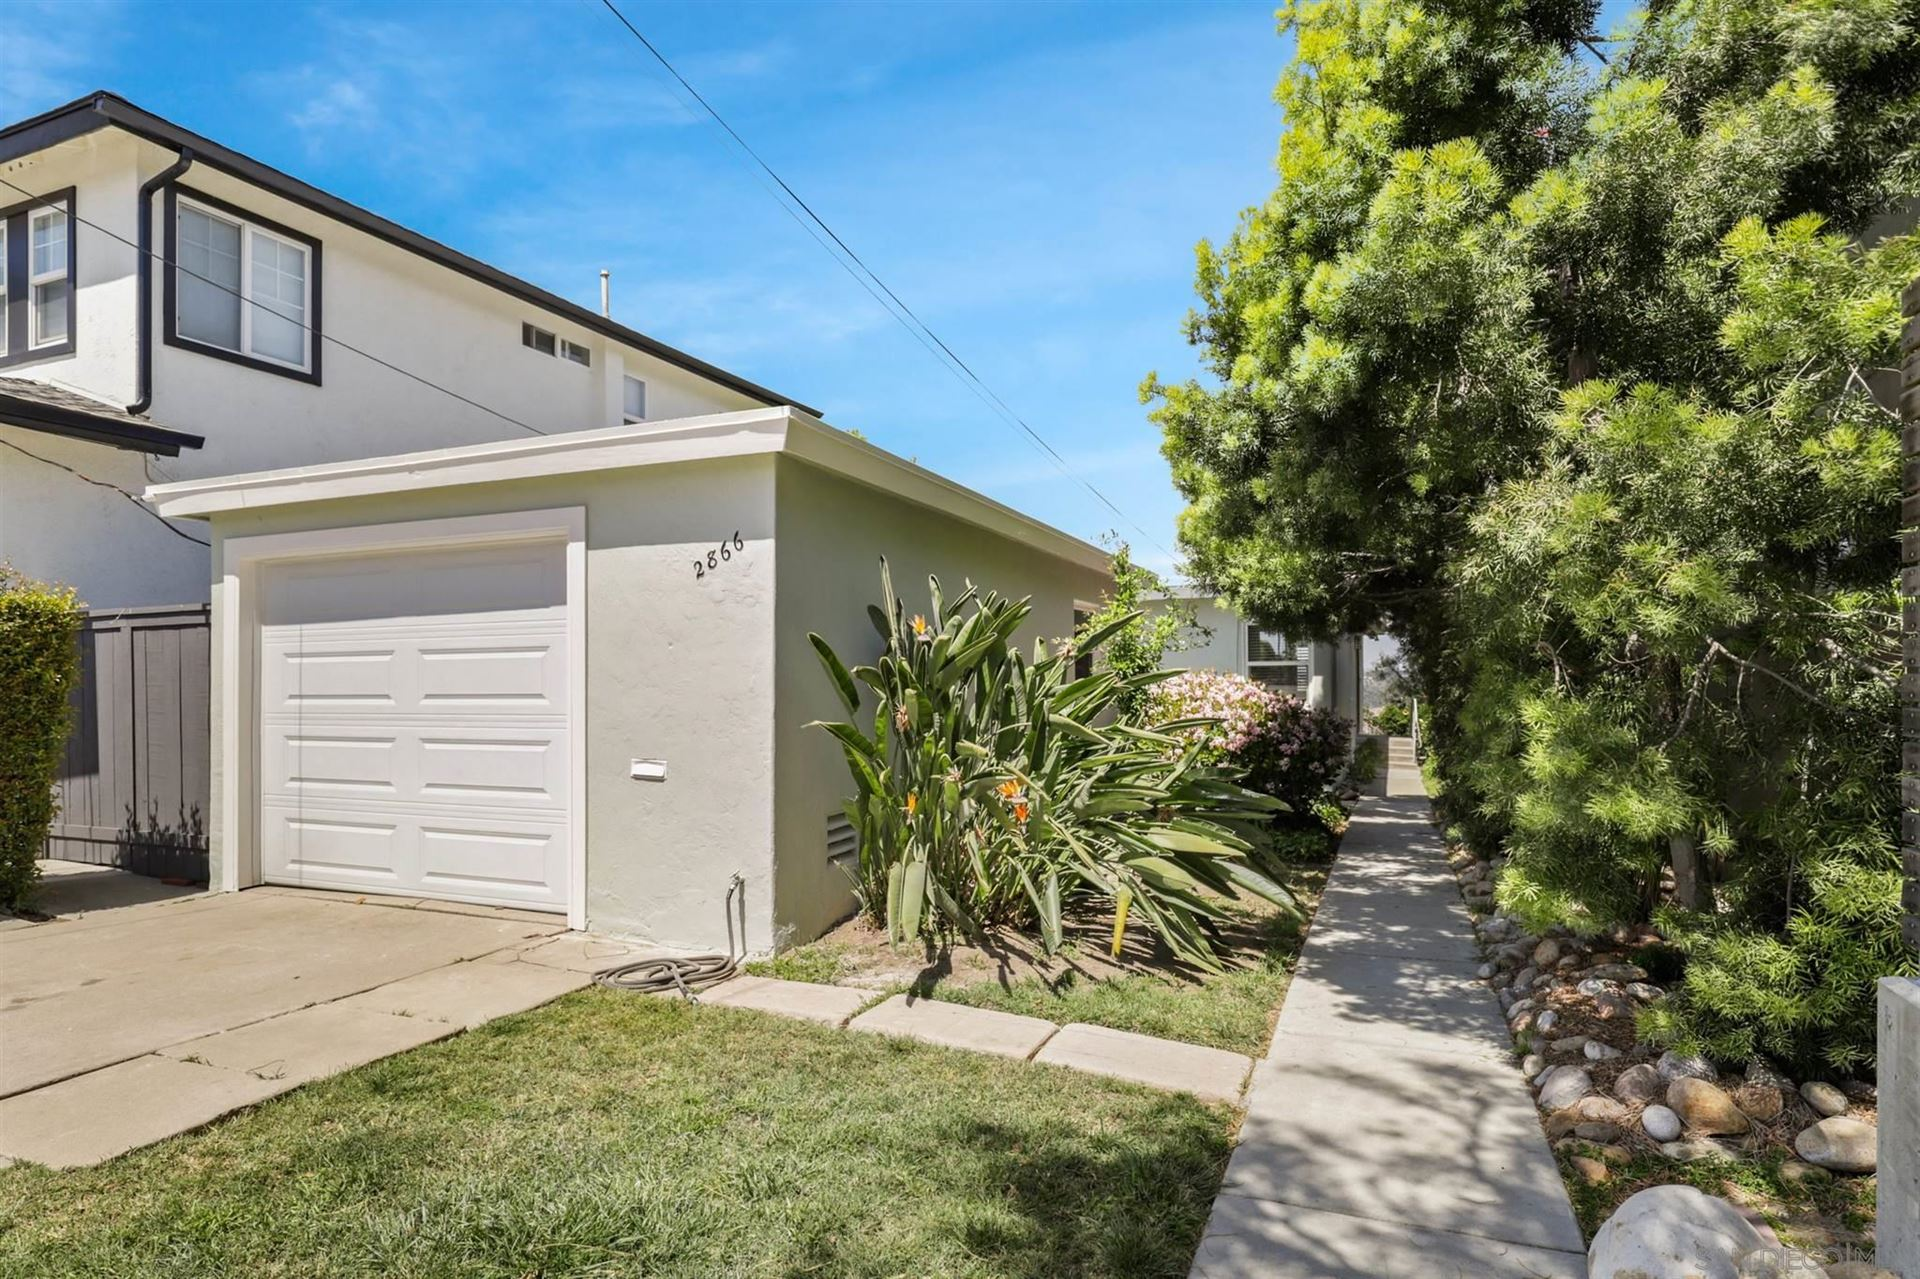 Photo for 2866 Copley Ave, San Diego, CA 92116 (MLS # 210008990)